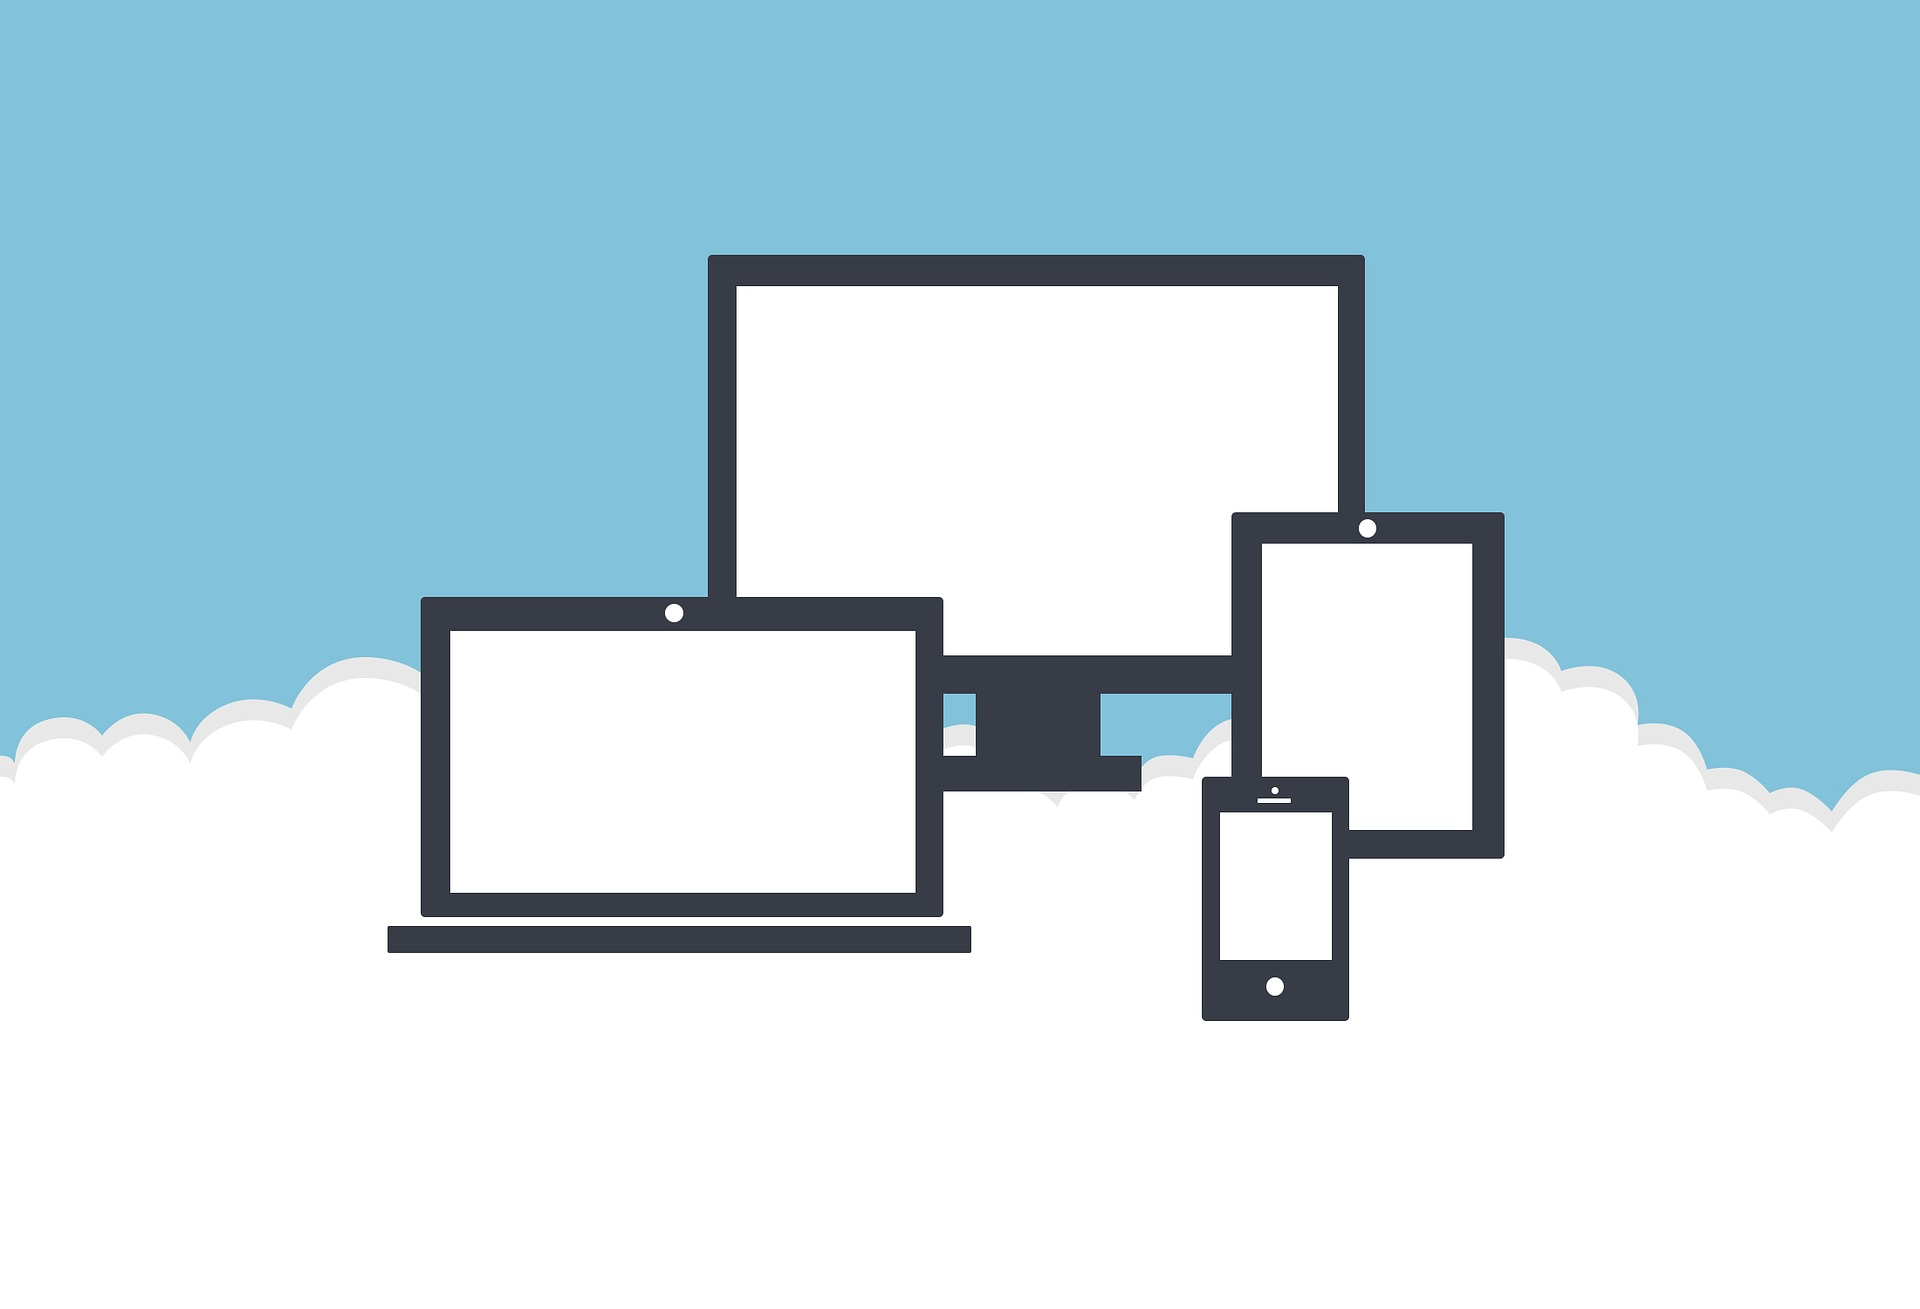 Xamin Discusses Why It's Time to Embrace Mobile and Cloud Computing in Latest Whitepaper